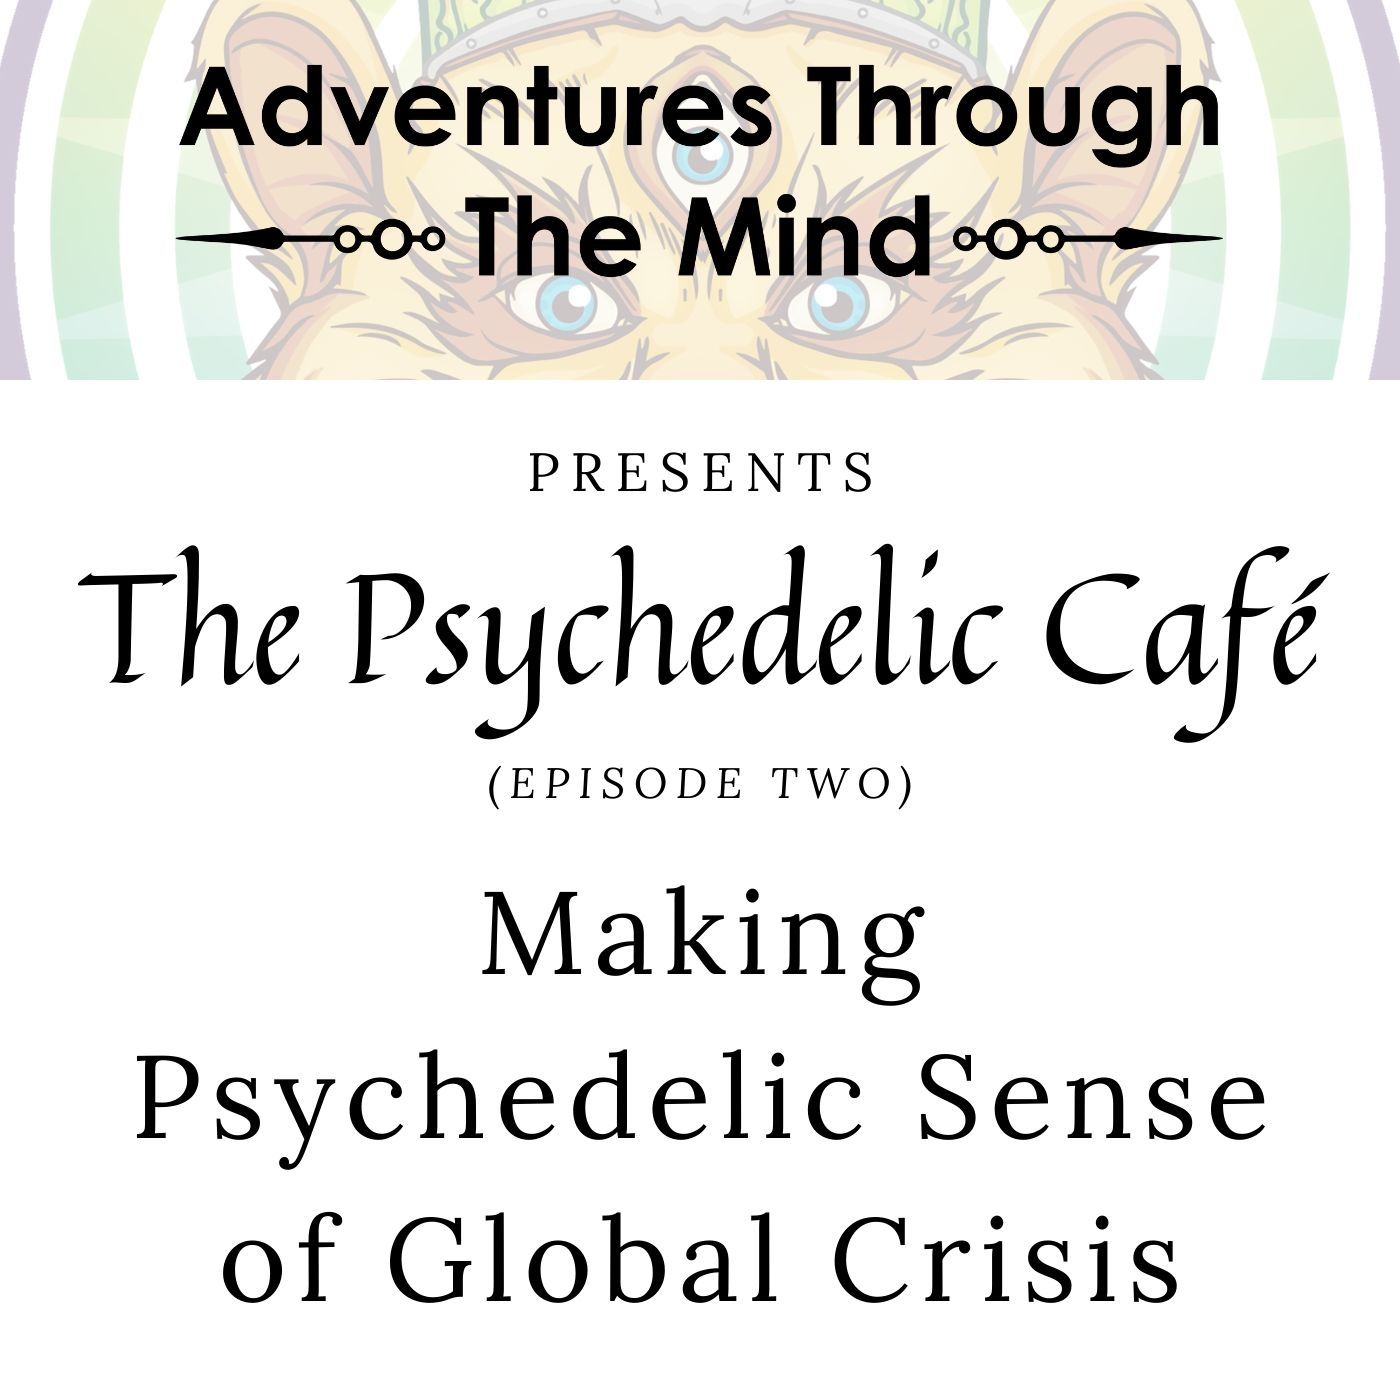 What Psychedelics Can Teach Us About Dealing With Crisis | Psychedelic Café 2